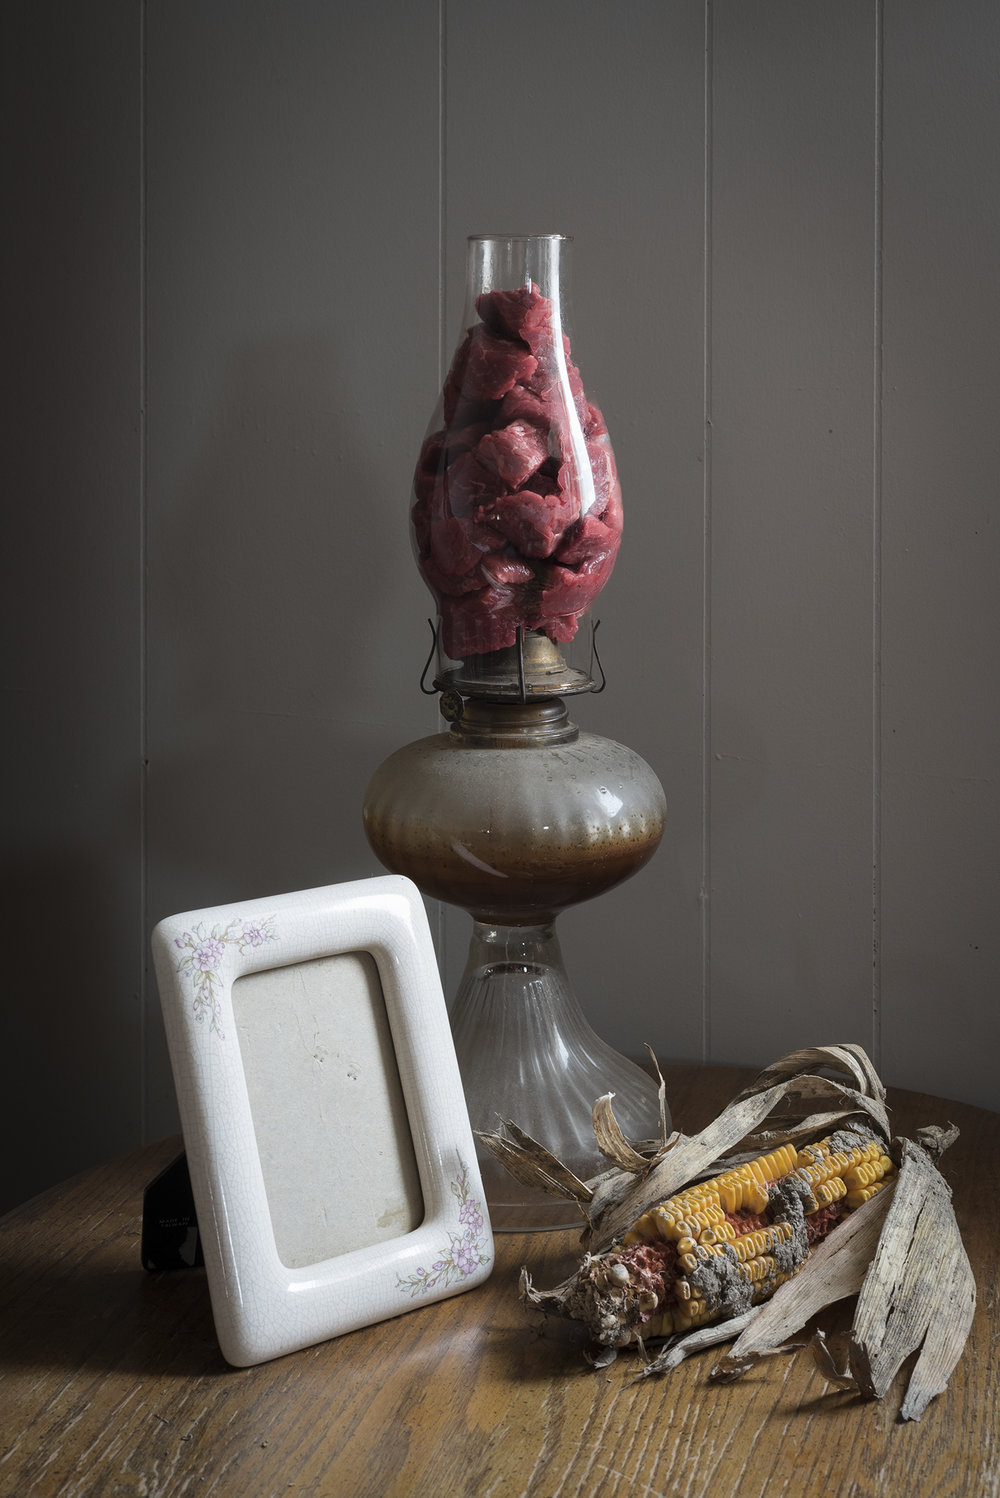 Untitled (Still Life with Oil Lamp and Angus)